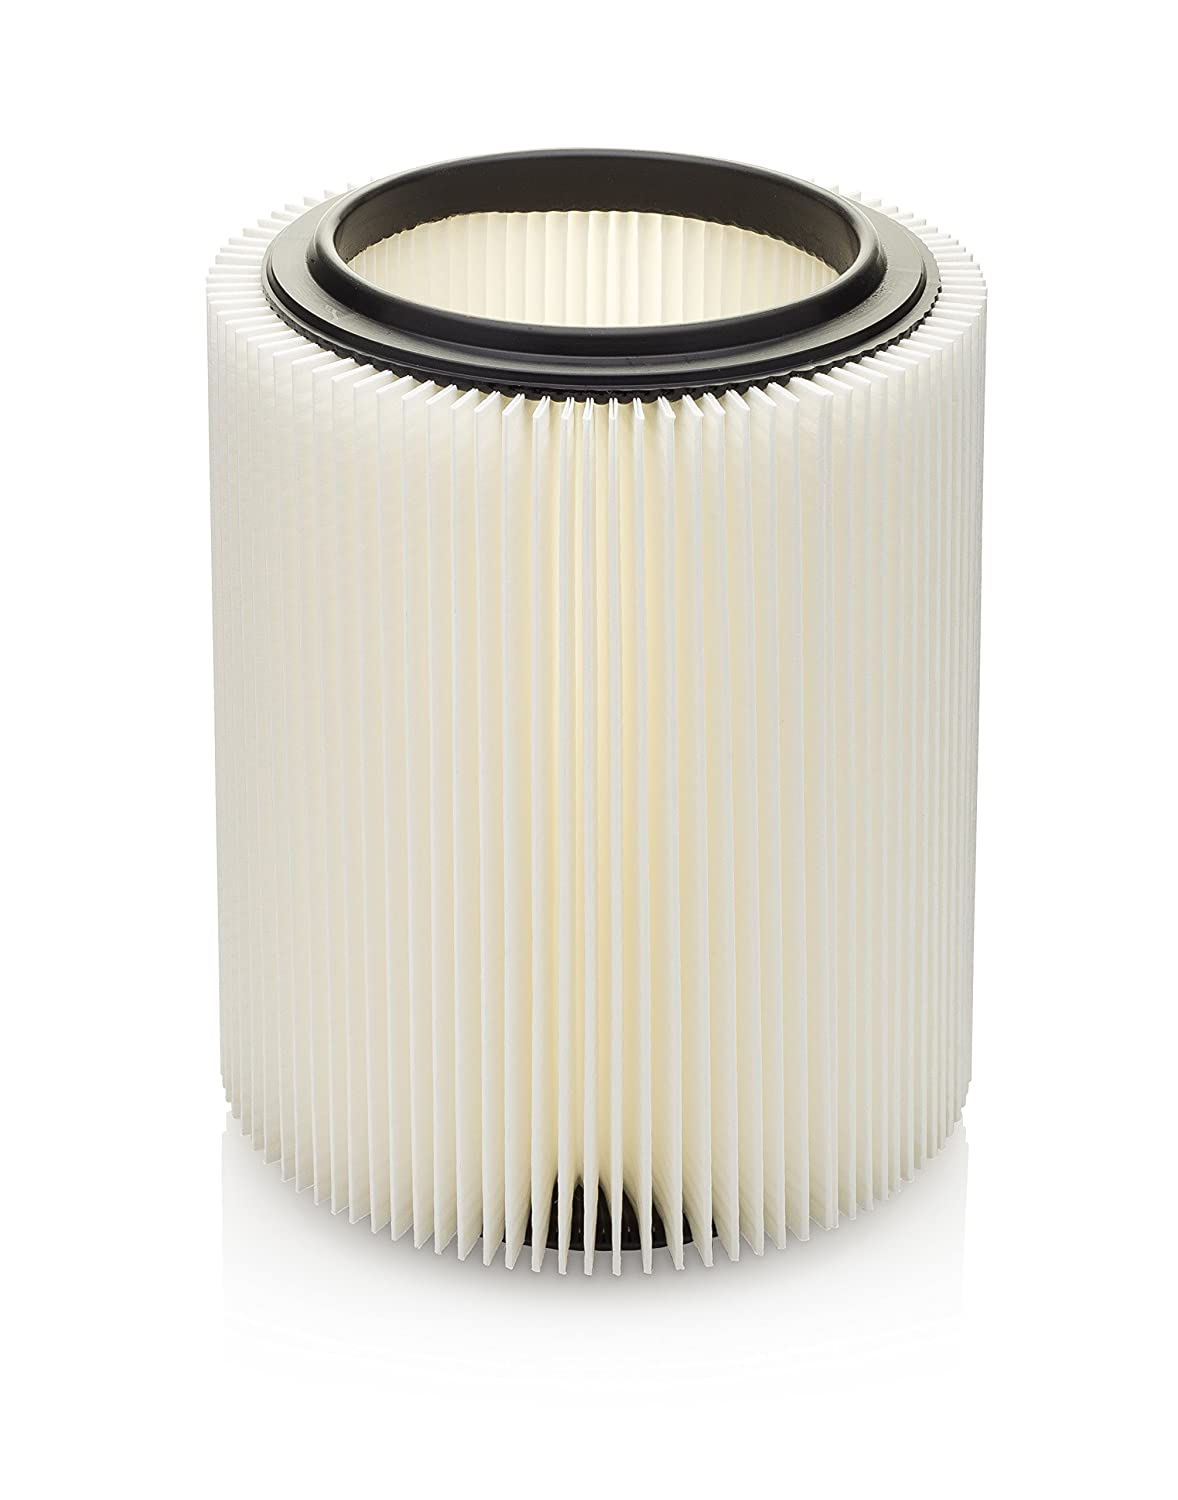 Craftsman & Ridgid Replacement Filter by Kopach